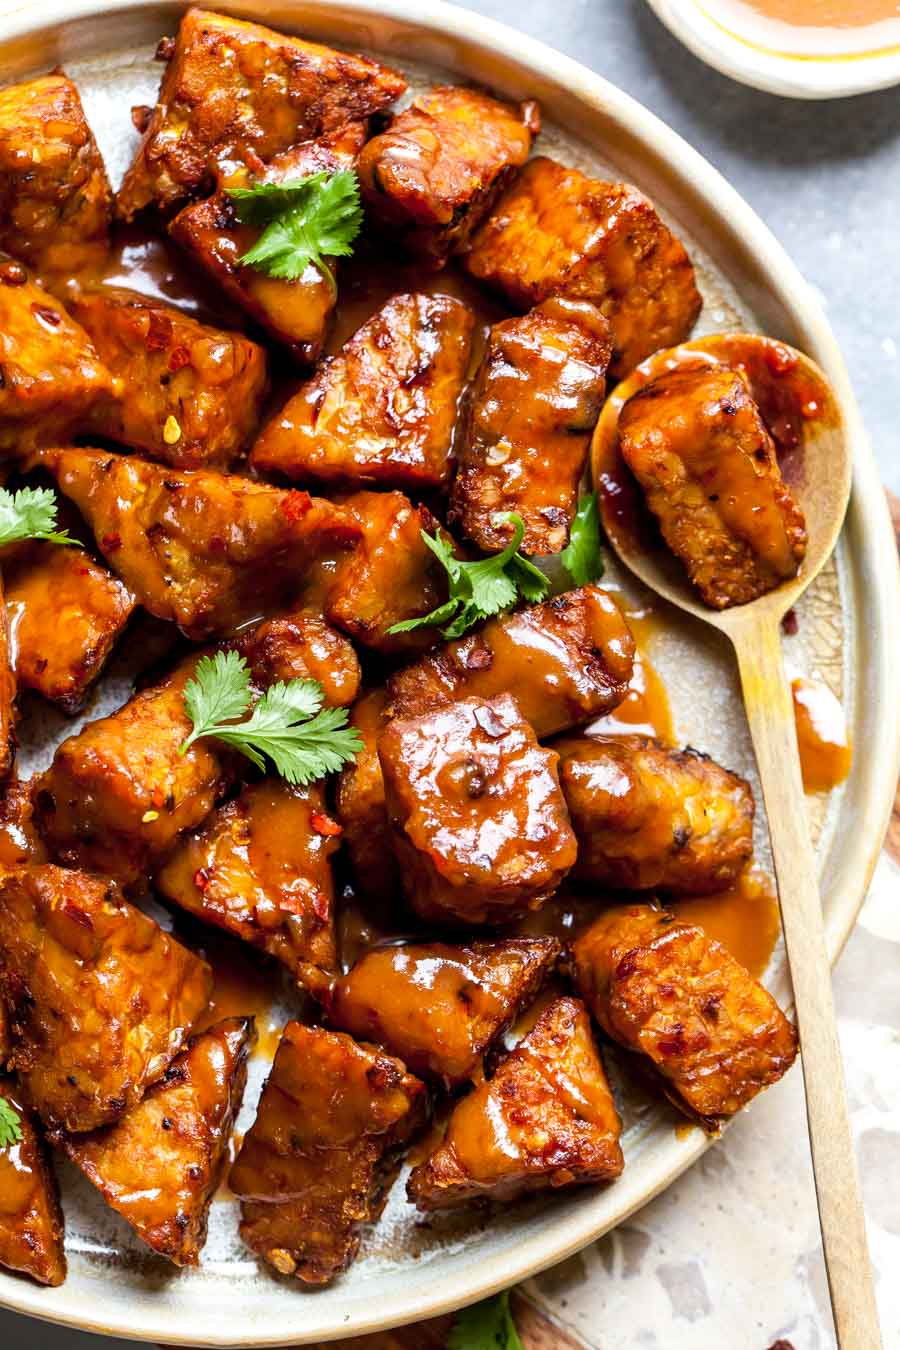 Close up image showing tempeh with peanut sauce